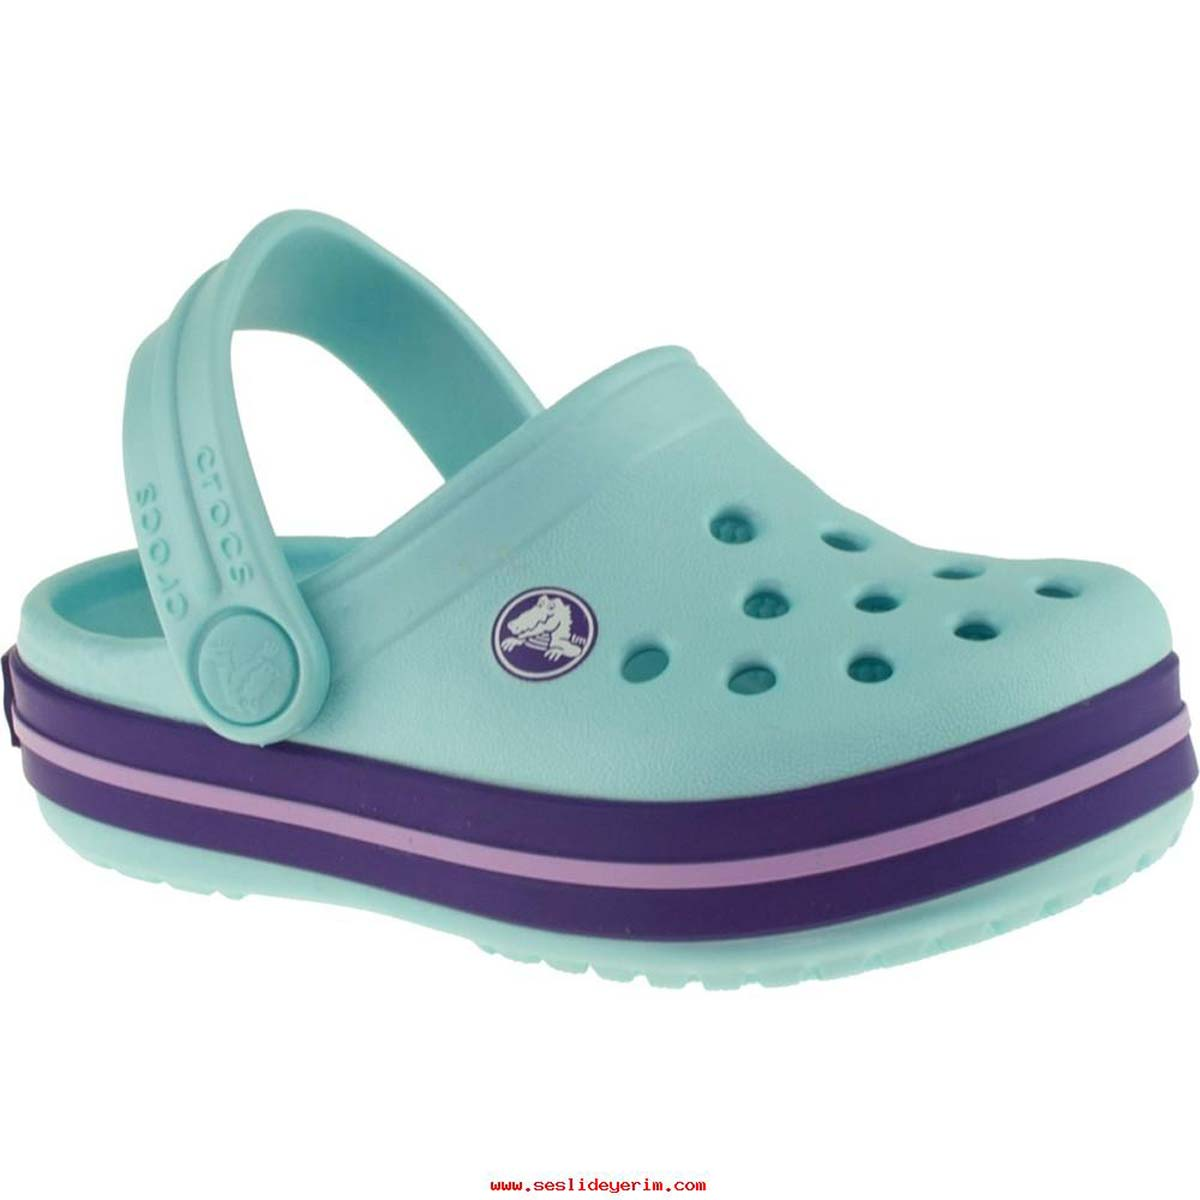 e25747a2f6935 Crocs Crocband K Junior Clog (Ice Blue) Online at Lowest Price in India